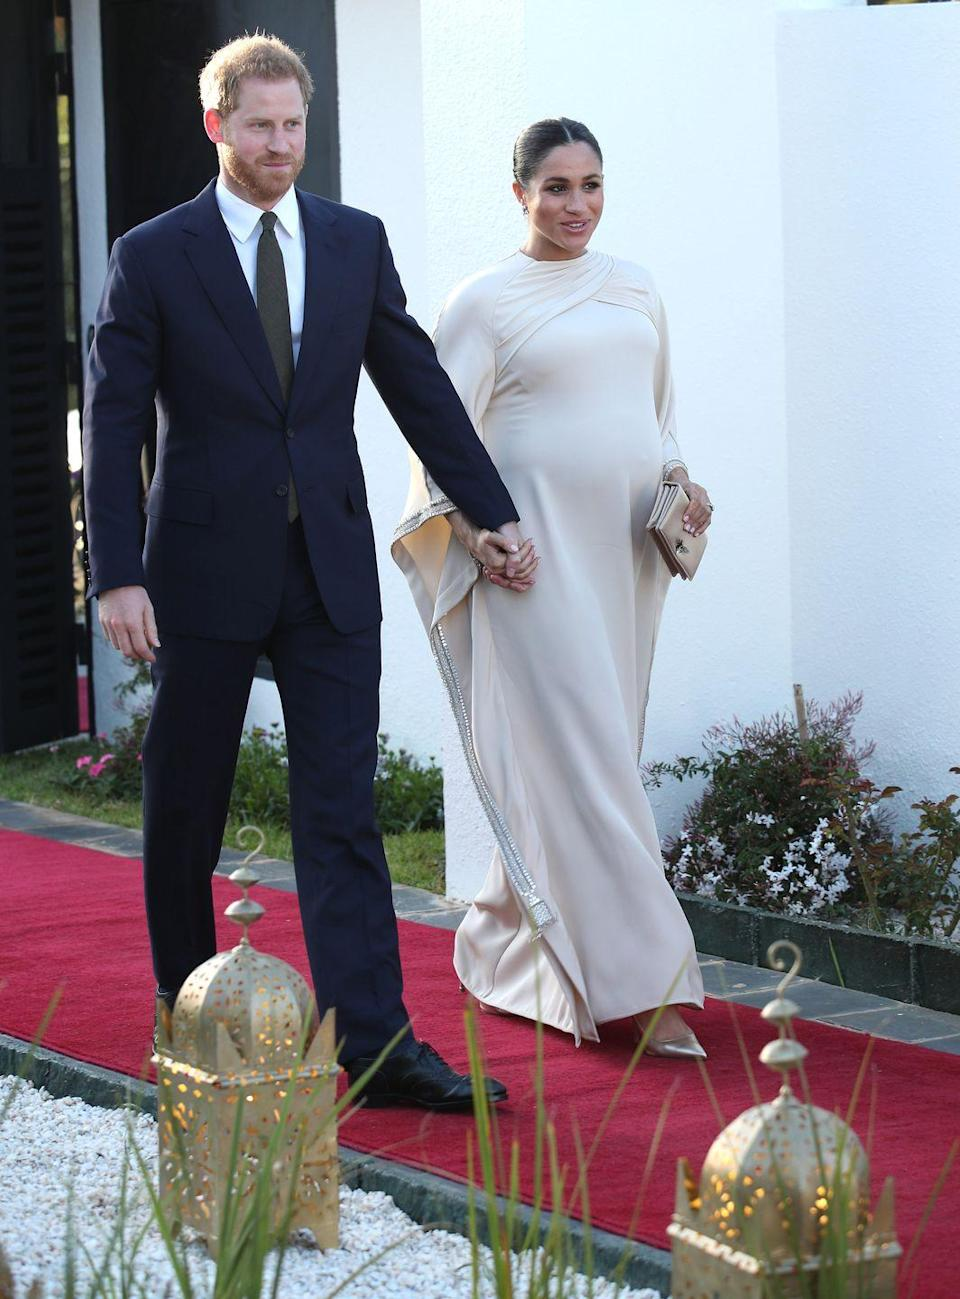 """<p>Last year, Meghan and Prince Harry toured Morocco and attended a reception hosted by the British Ambassador. For this event, Meghan, pregnant at the time, stunned in a cream, <a href=""""https://www.townandcountrymag.com/style/fashion-trends/a26496908/meghan-markle-cream-bespoke-dior-dress-morocco-photos/"""" rel=""""nofollow noopener"""" target=""""_blank"""" data-ylk=""""slk:bespoke Dior cape dress"""" class=""""link rapid-noclick-resp"""">bespoke Dior cape dress</a>. <br></p>"""